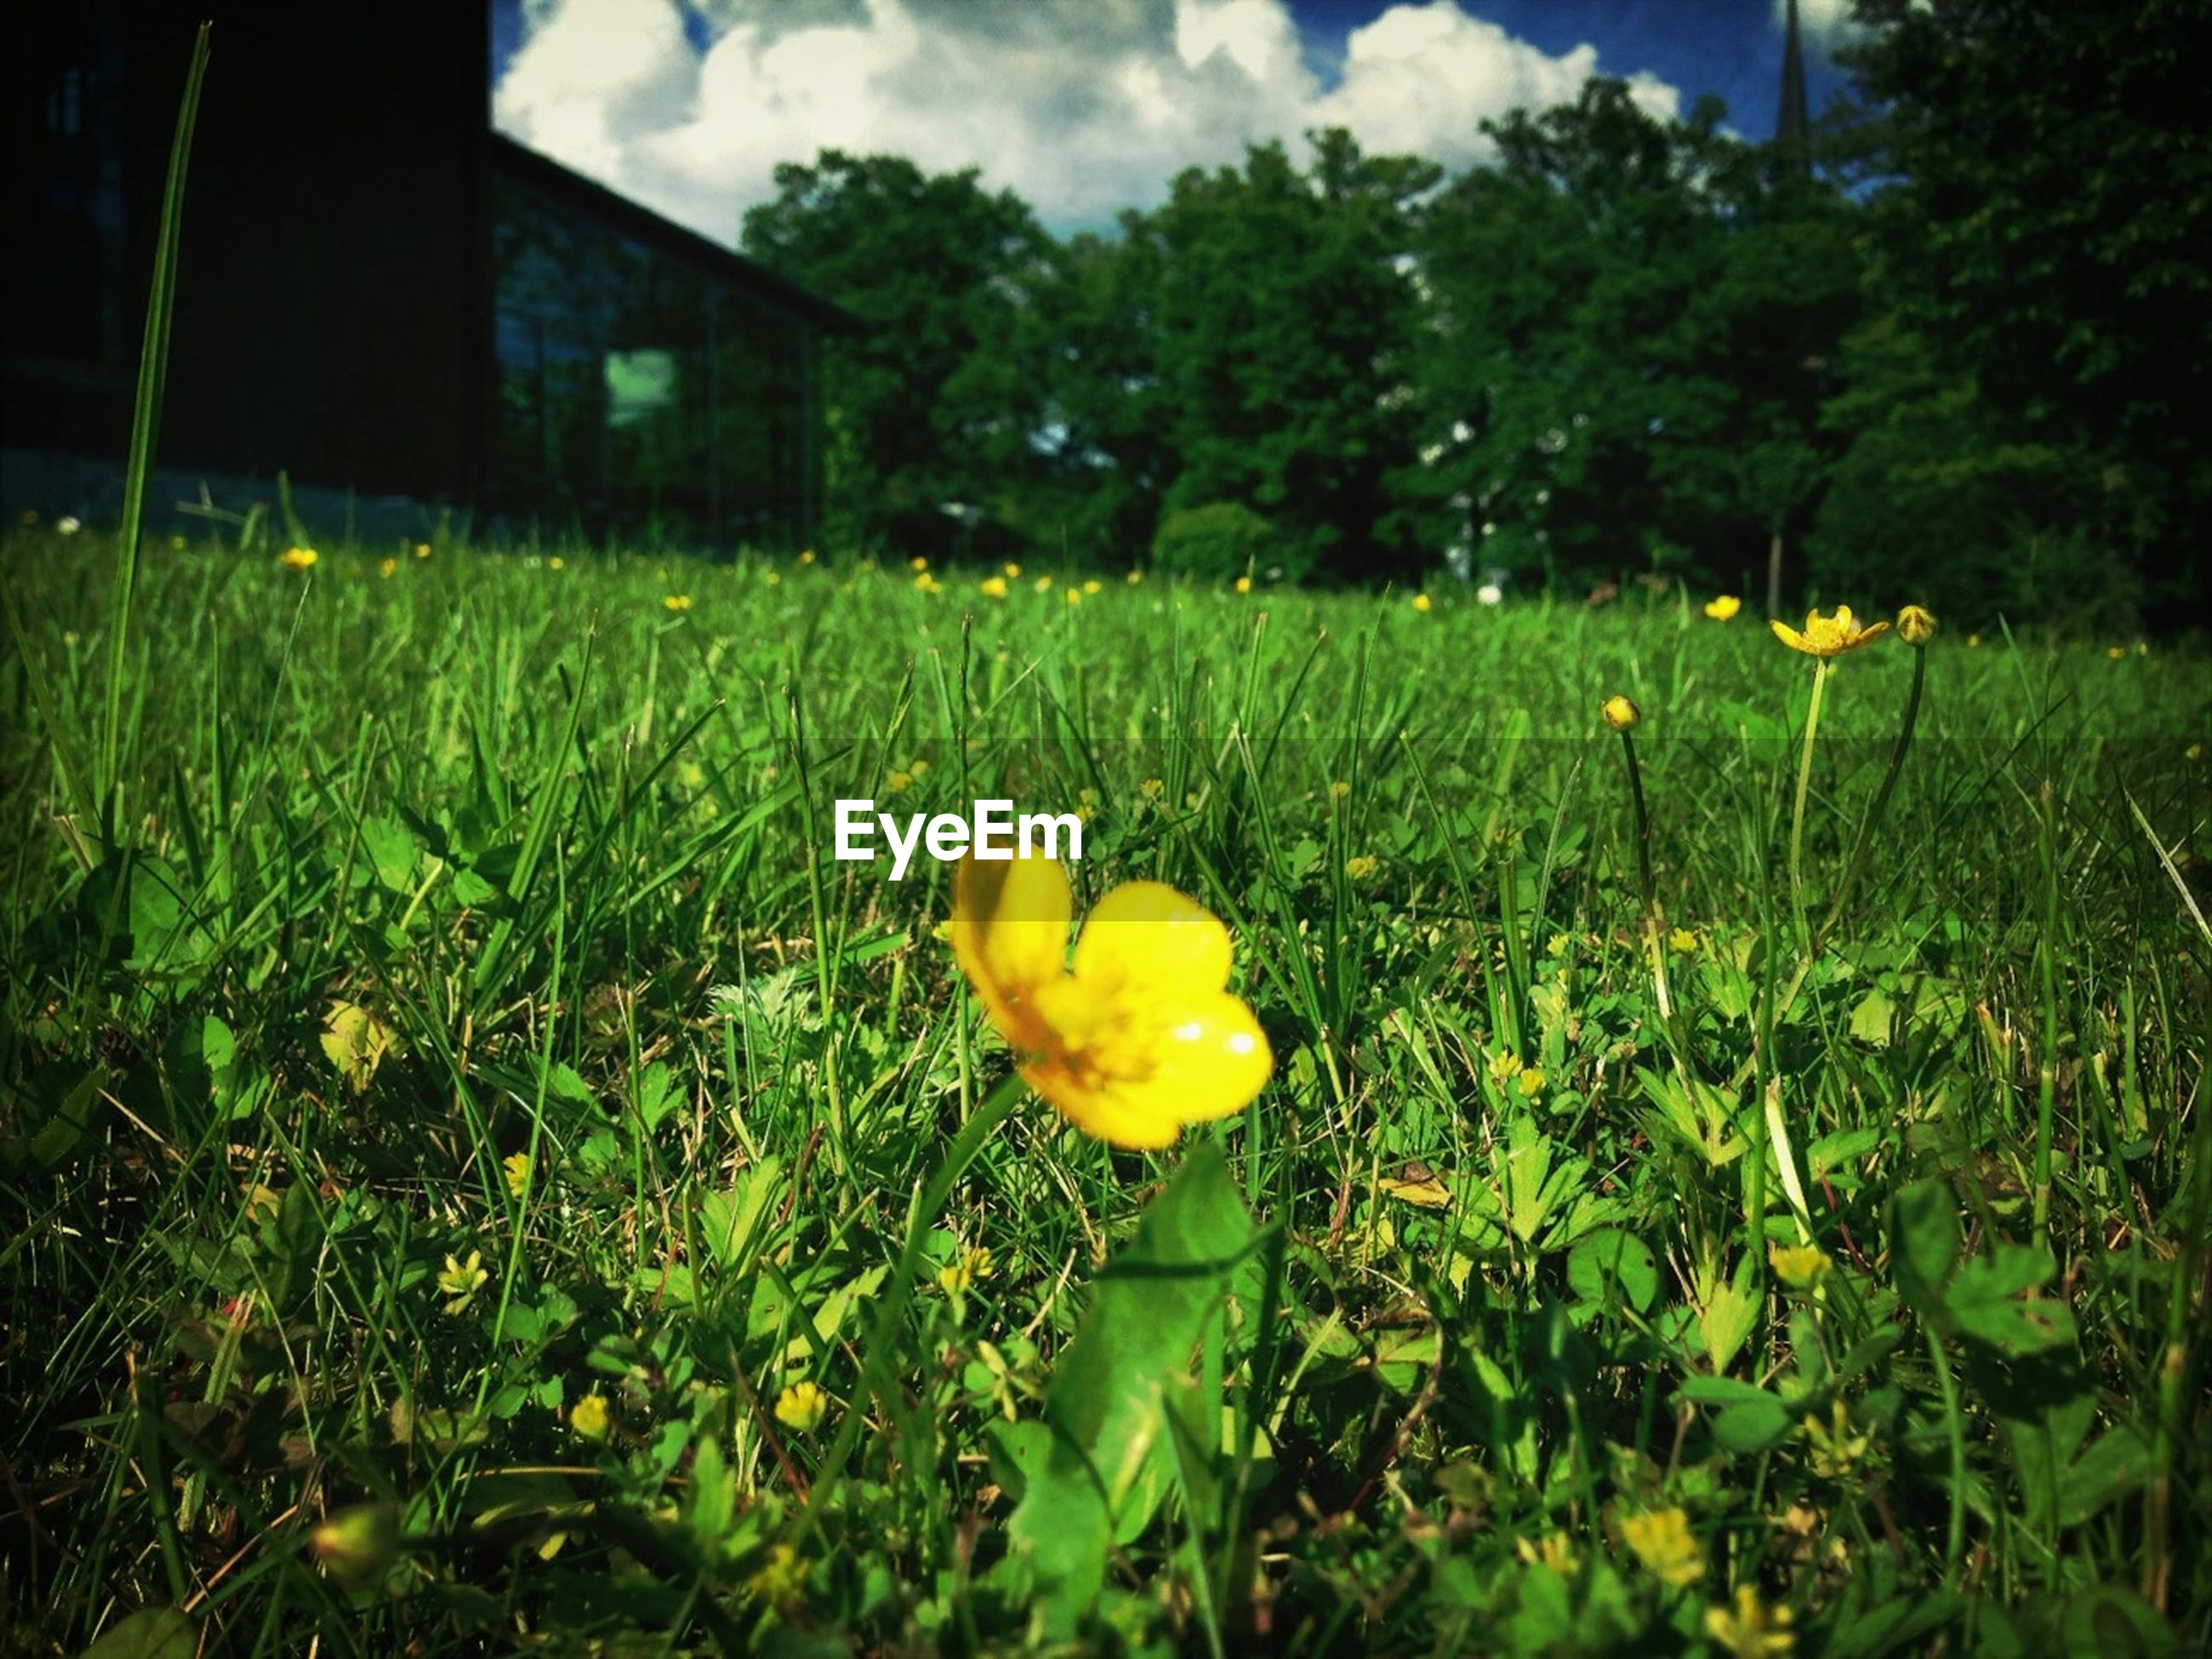 grass, field, flower, growth, green color, yellow, freshness, grassy, plant, beauty in nature, nature, fragility, sky, green, tranquility, landscape, petal, blooming, day, outdoors